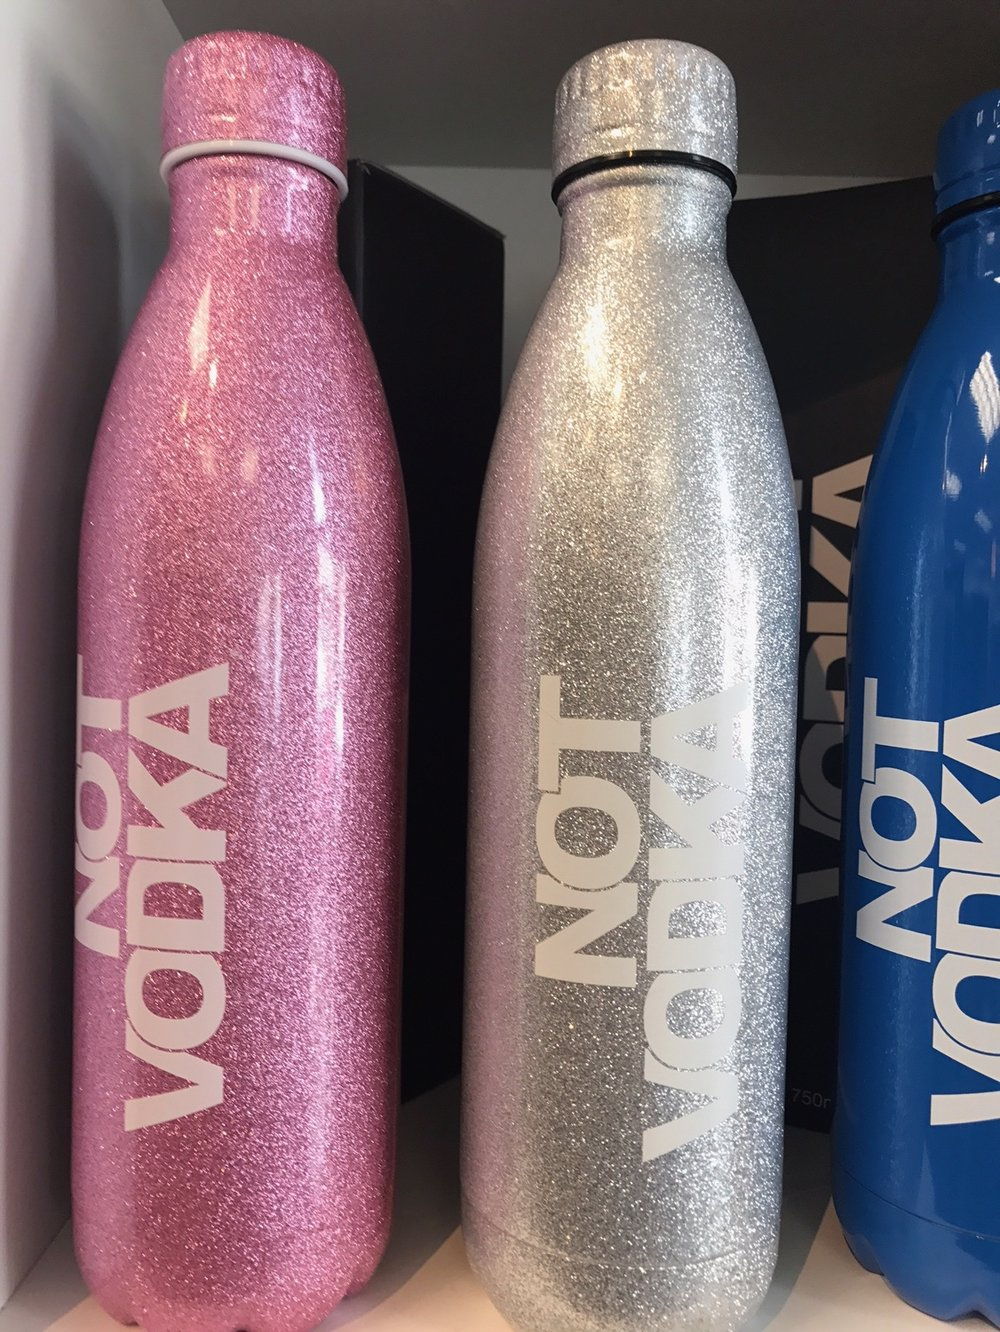 Not Vodka bottles, metallic